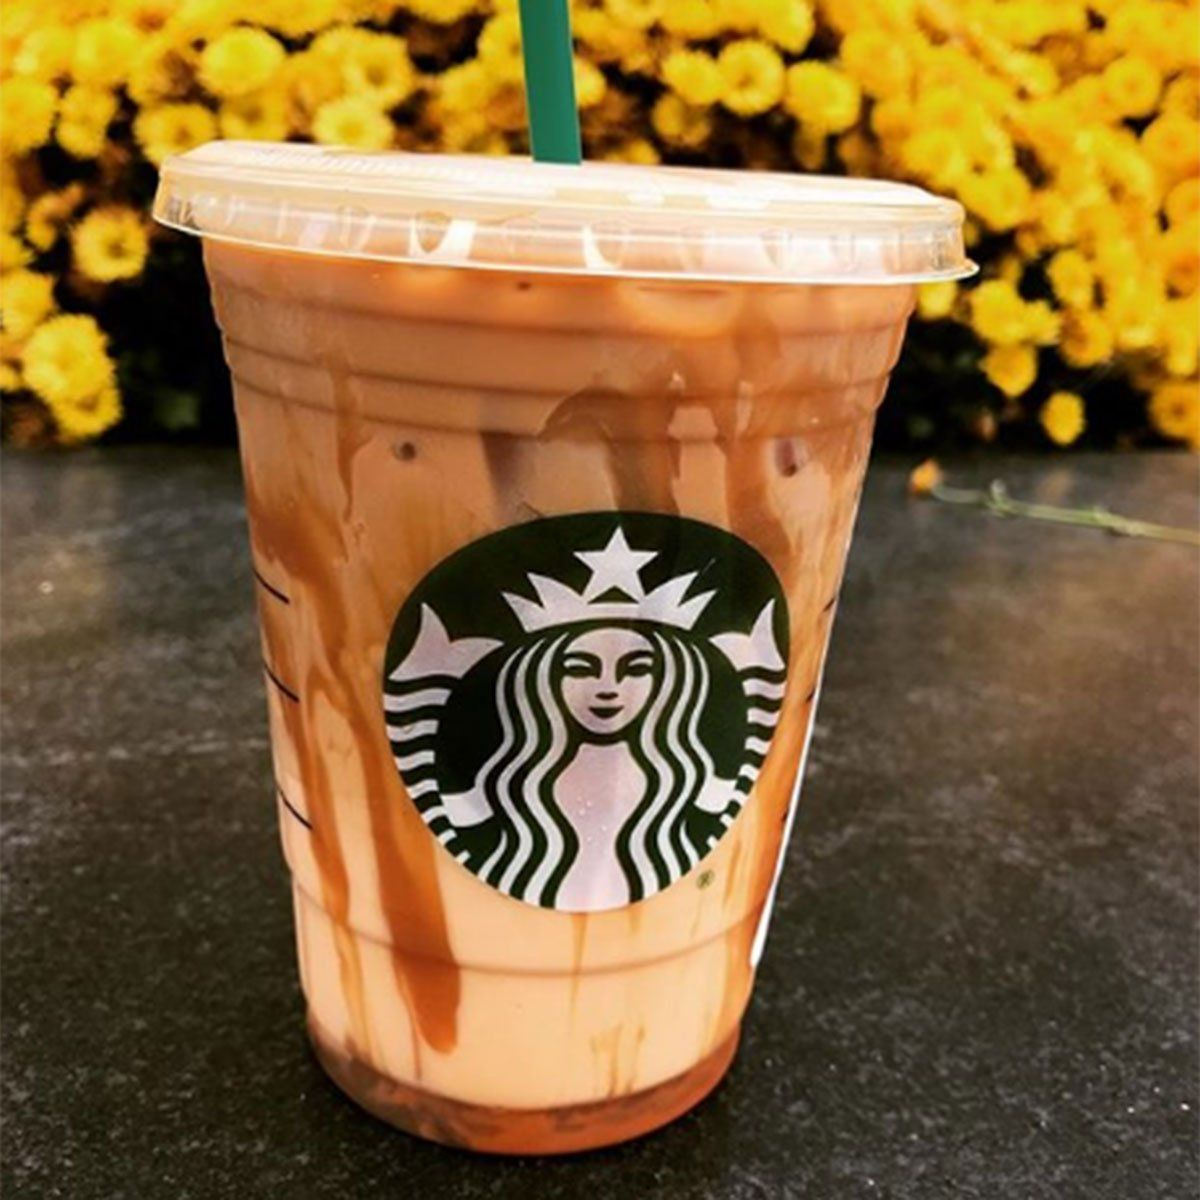 10 Starbucks Secret Menu Drinks That Might Be Better Than